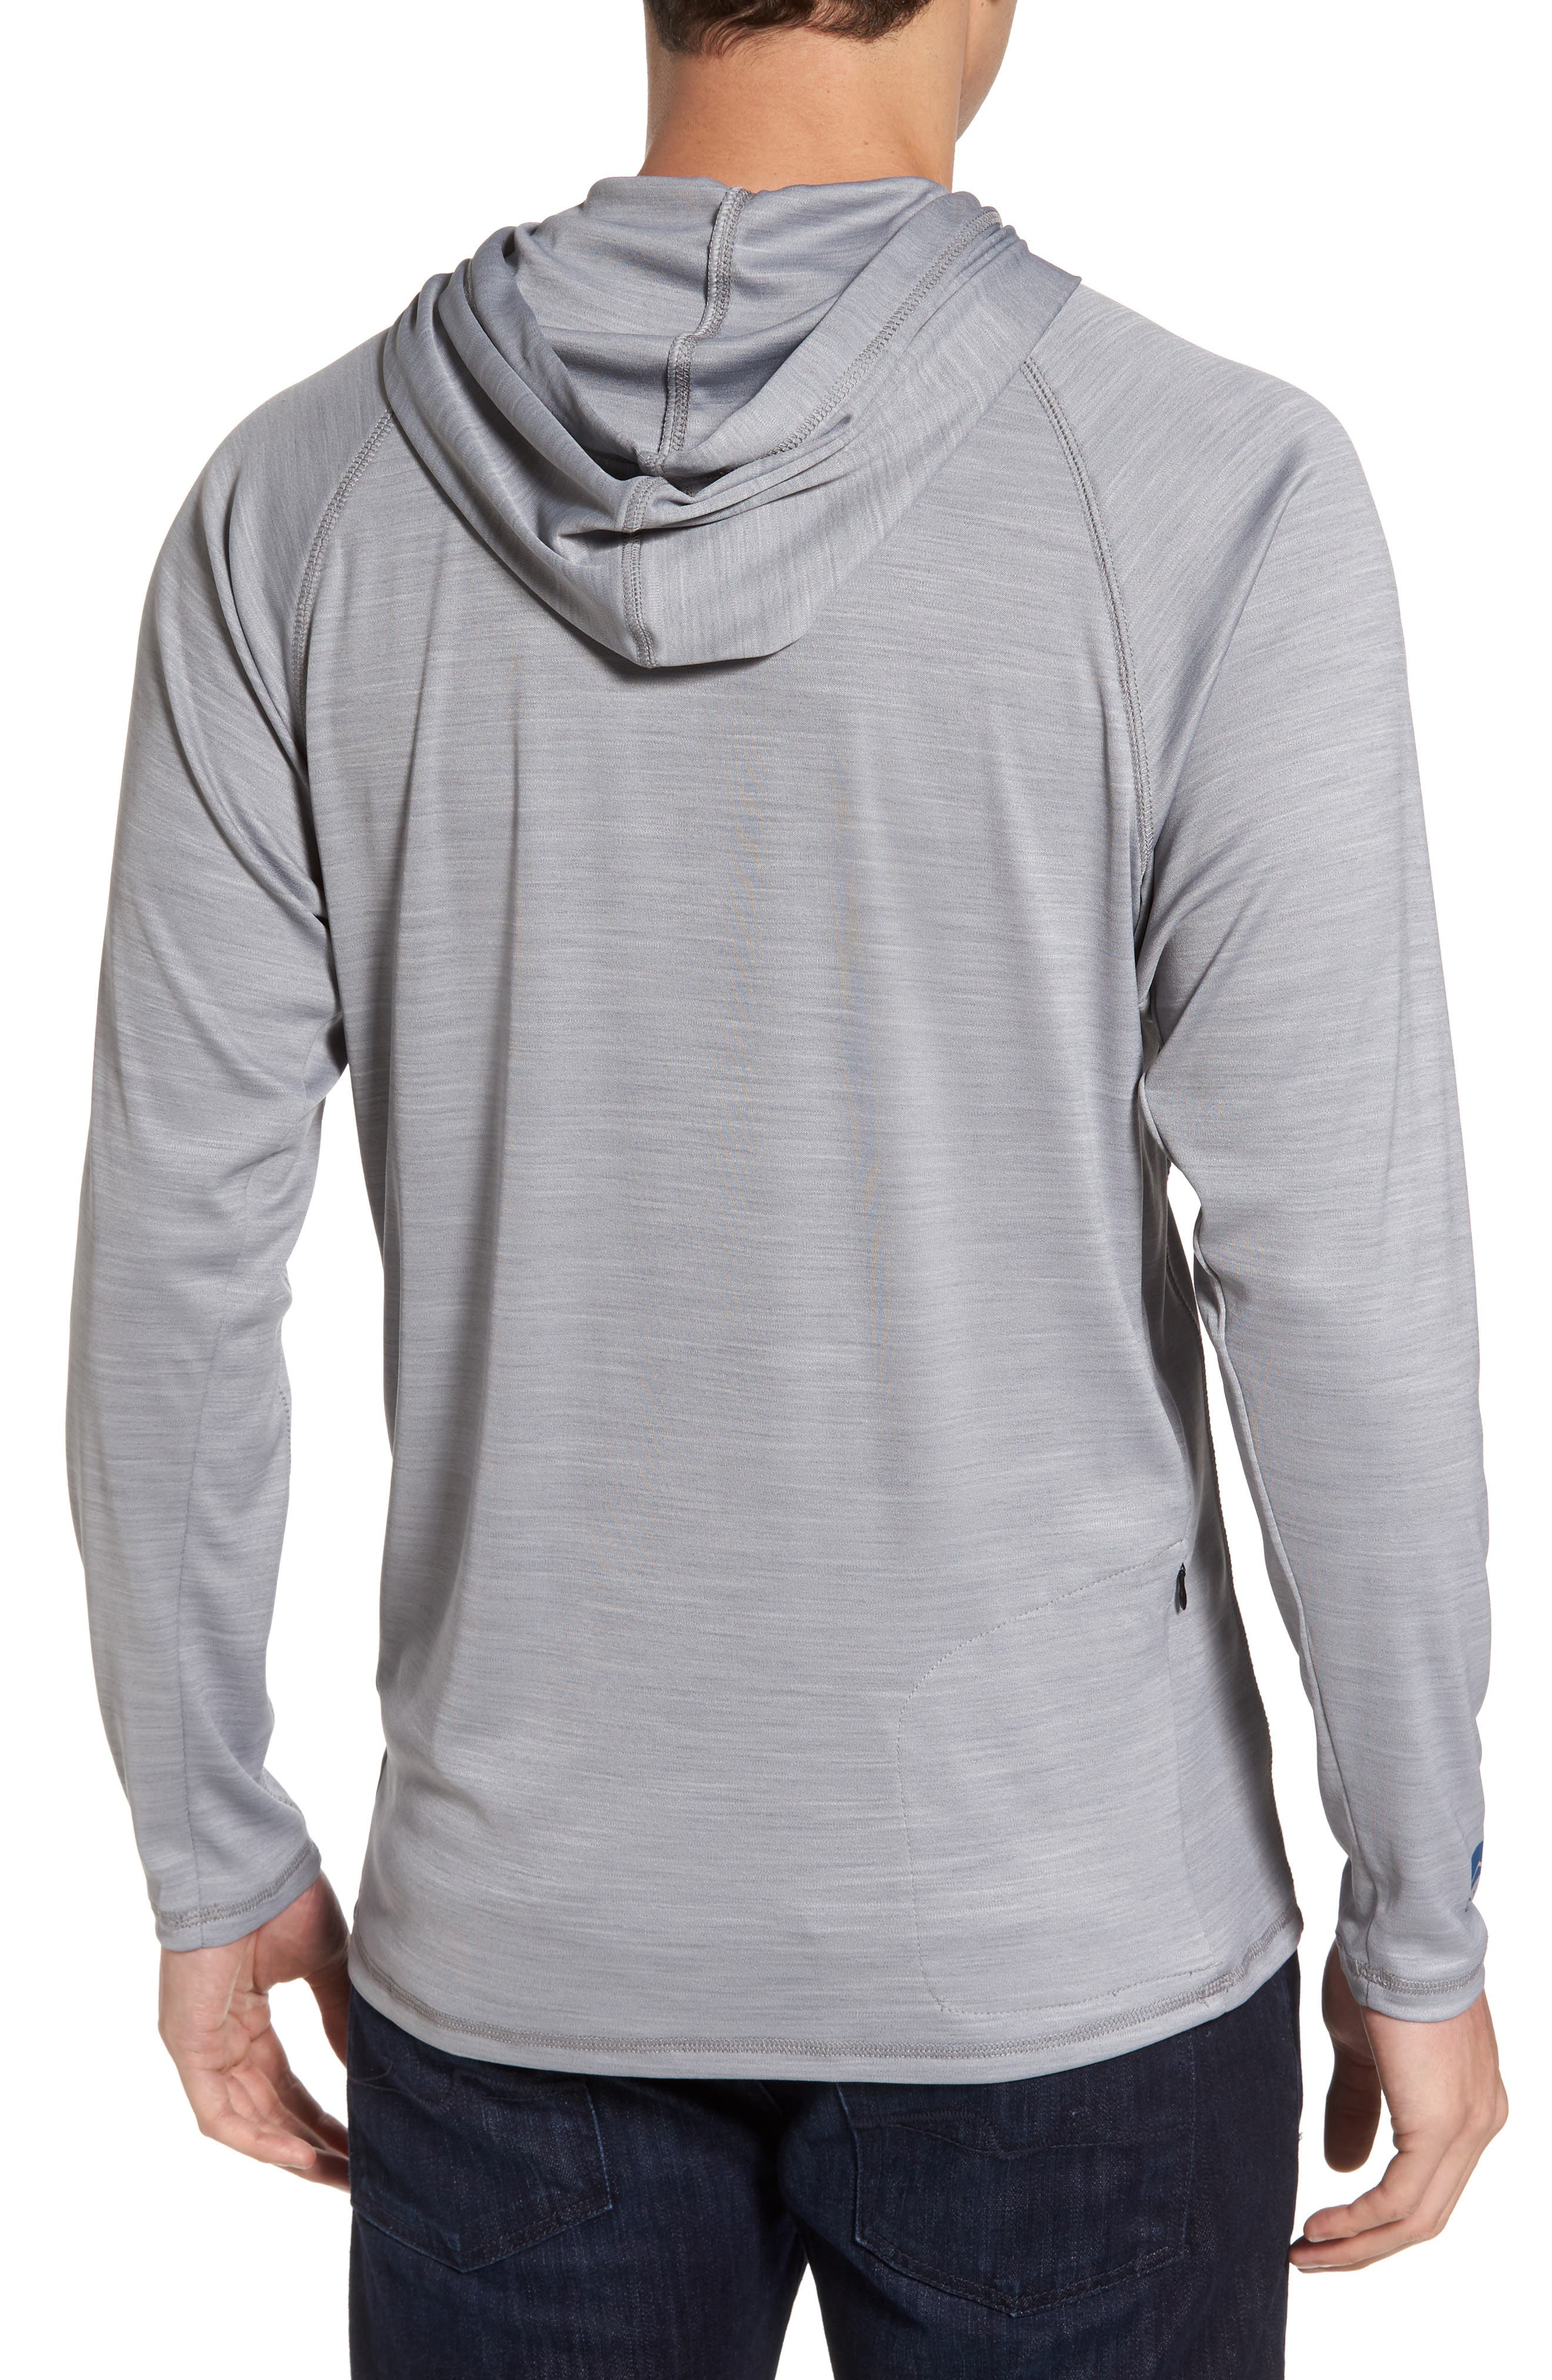 Undercover Hooded Long Sleeve Performance T-Shirt,                             Alternate thumbnail 2, color,                             020